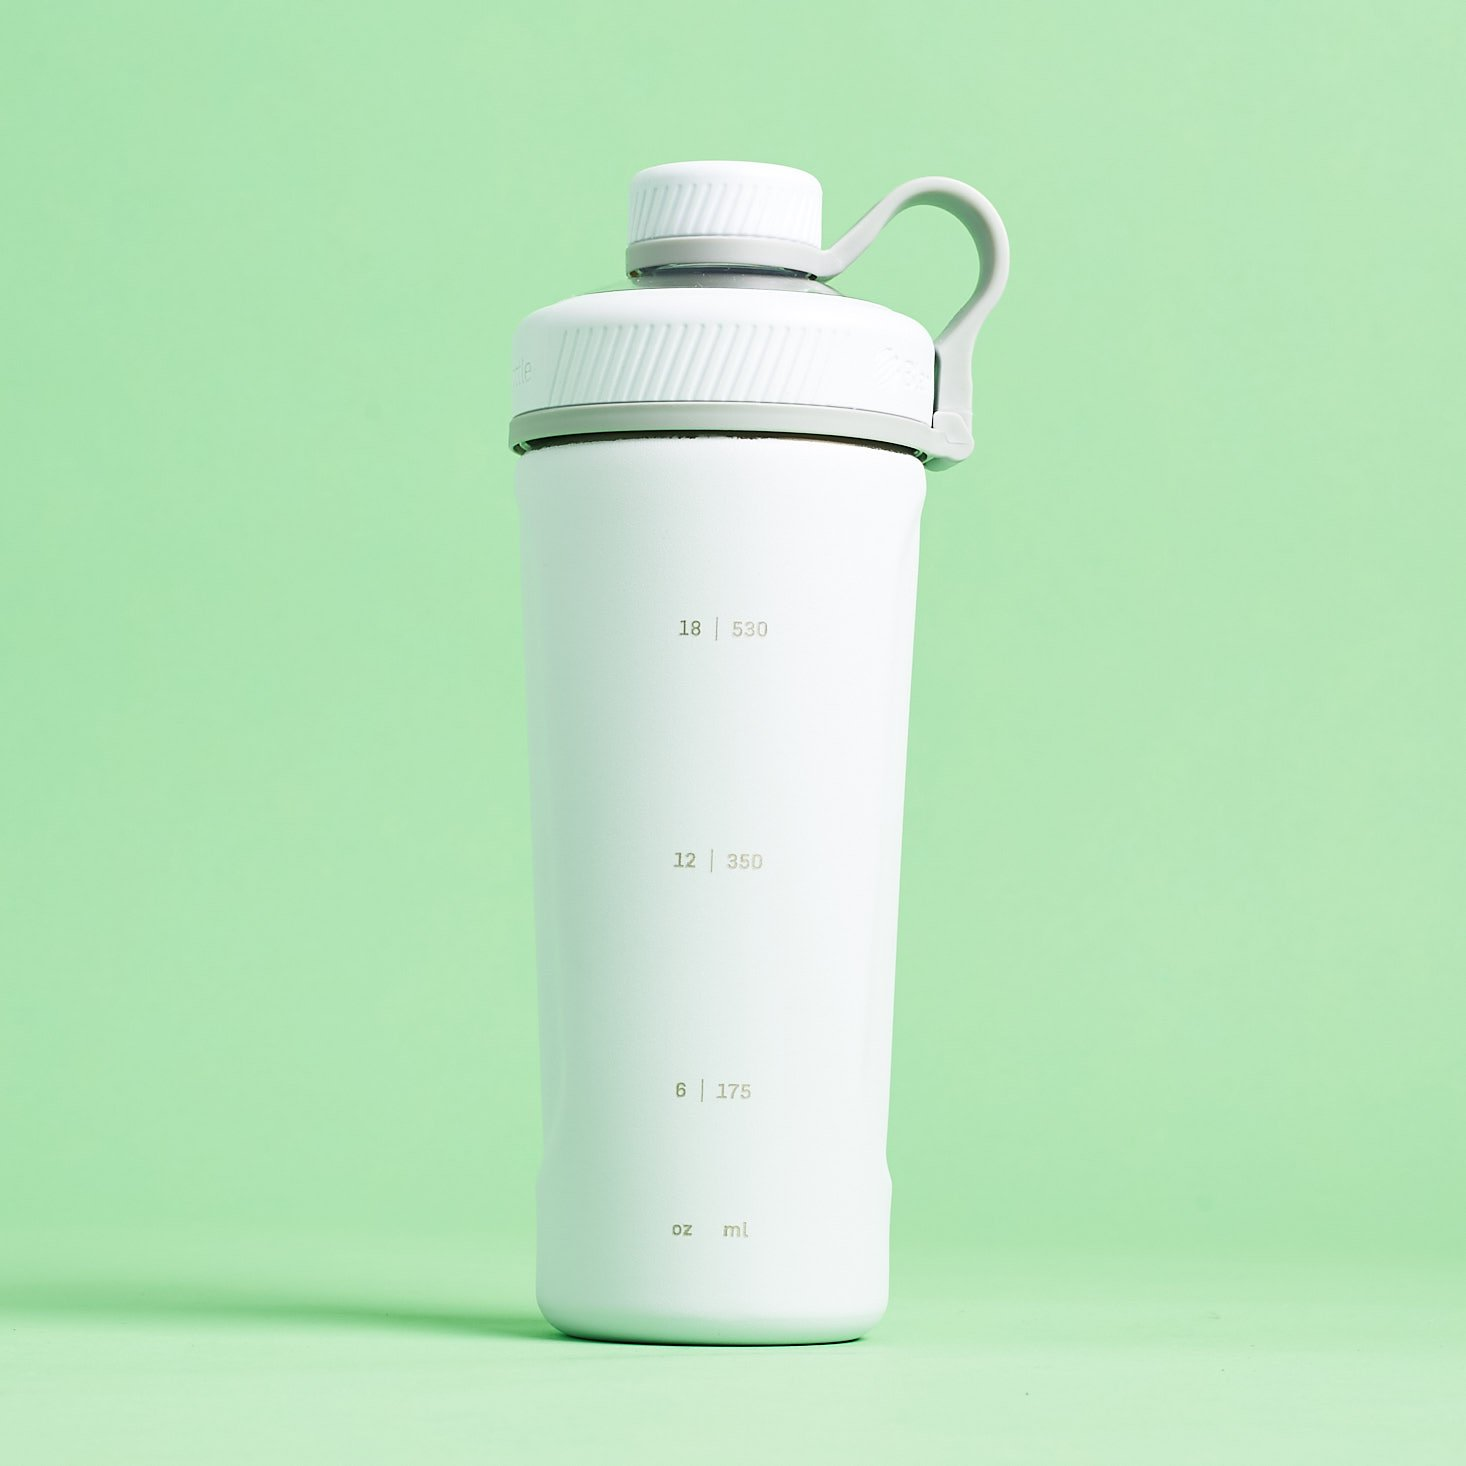 BlenderBottle Radian Insulated Stainless Steel Shaker- side with measuring markings